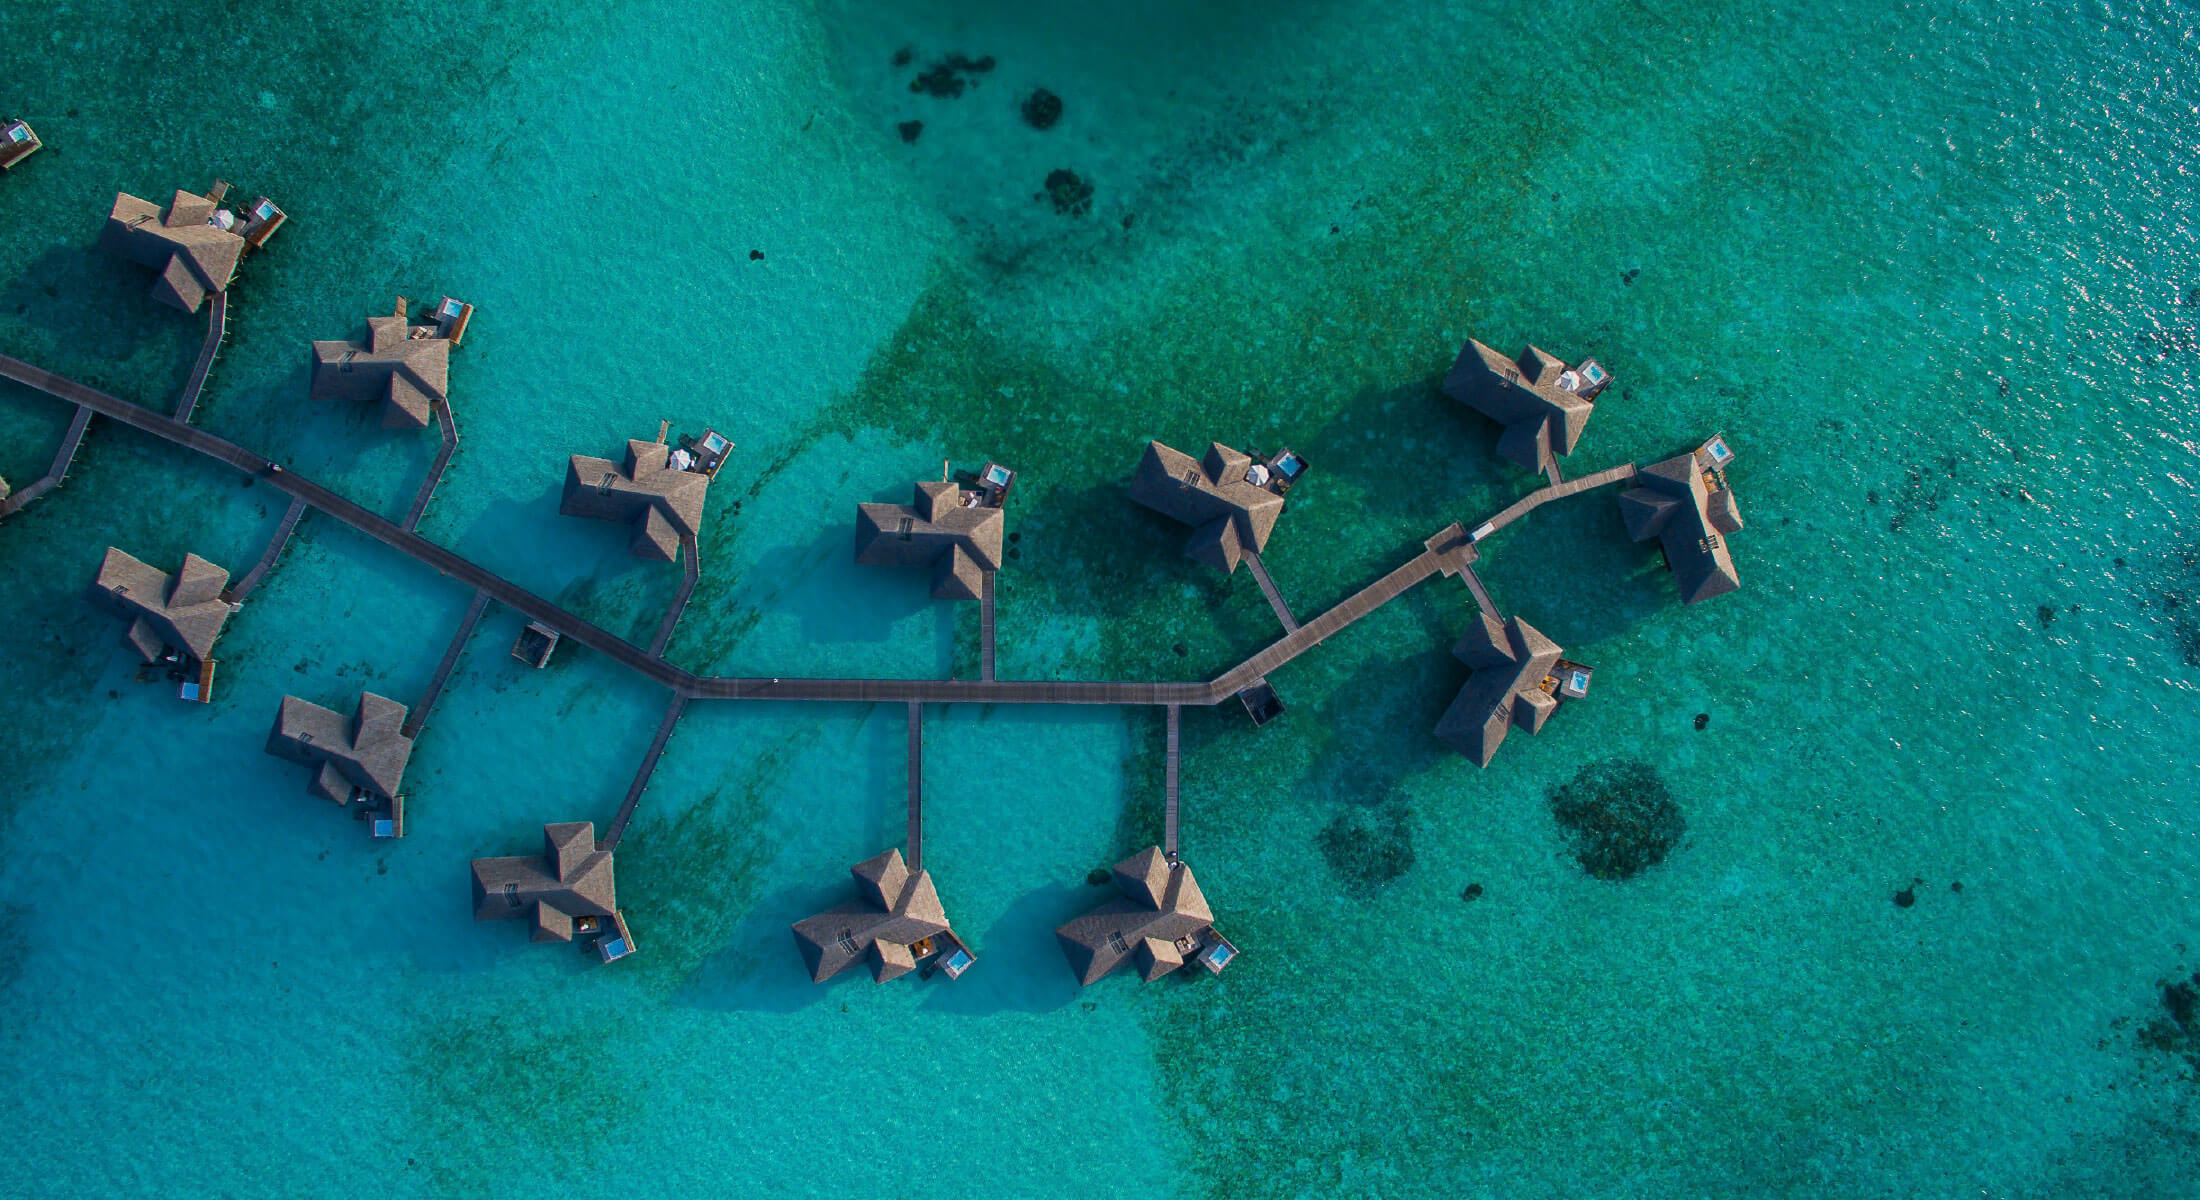 Aerial view of overwater villas in the Maldives